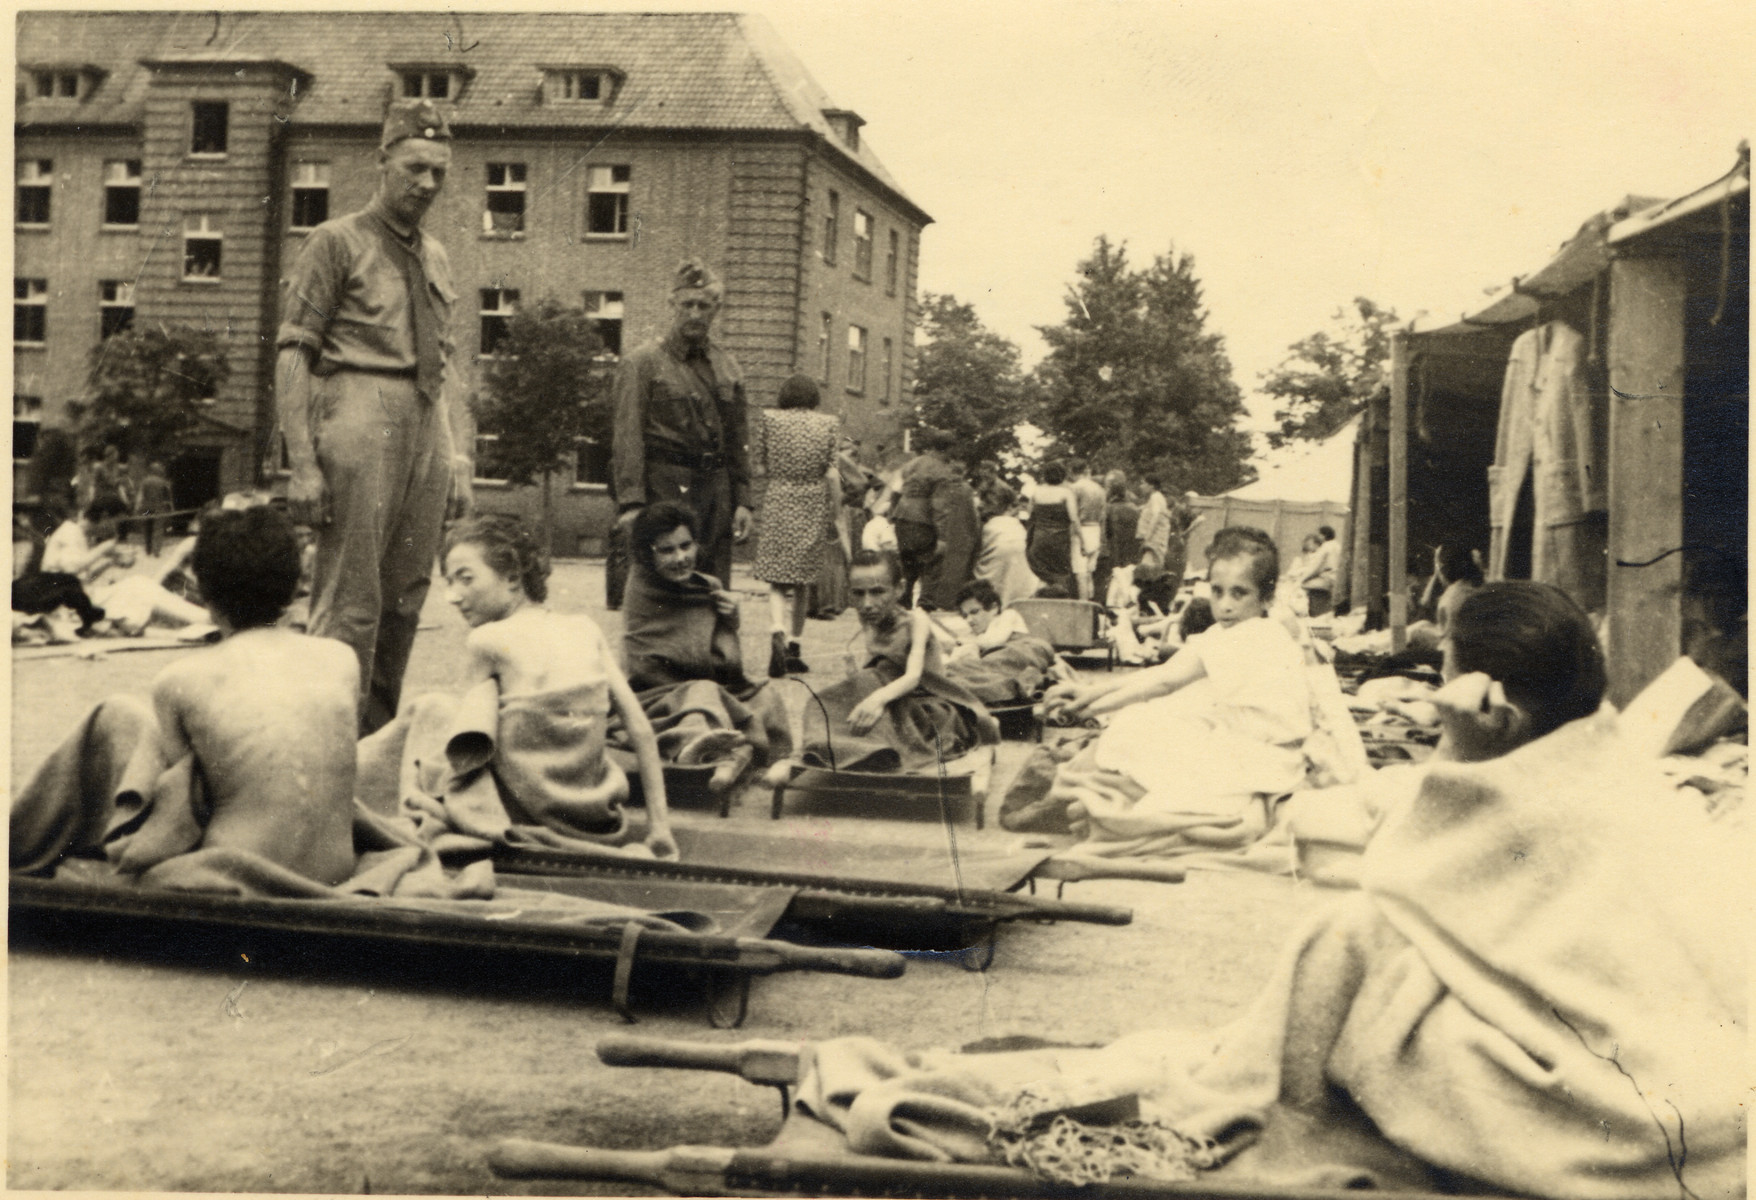 Survivors of Bergen-Belsen sit on stretchers while waiting on medical treatment.